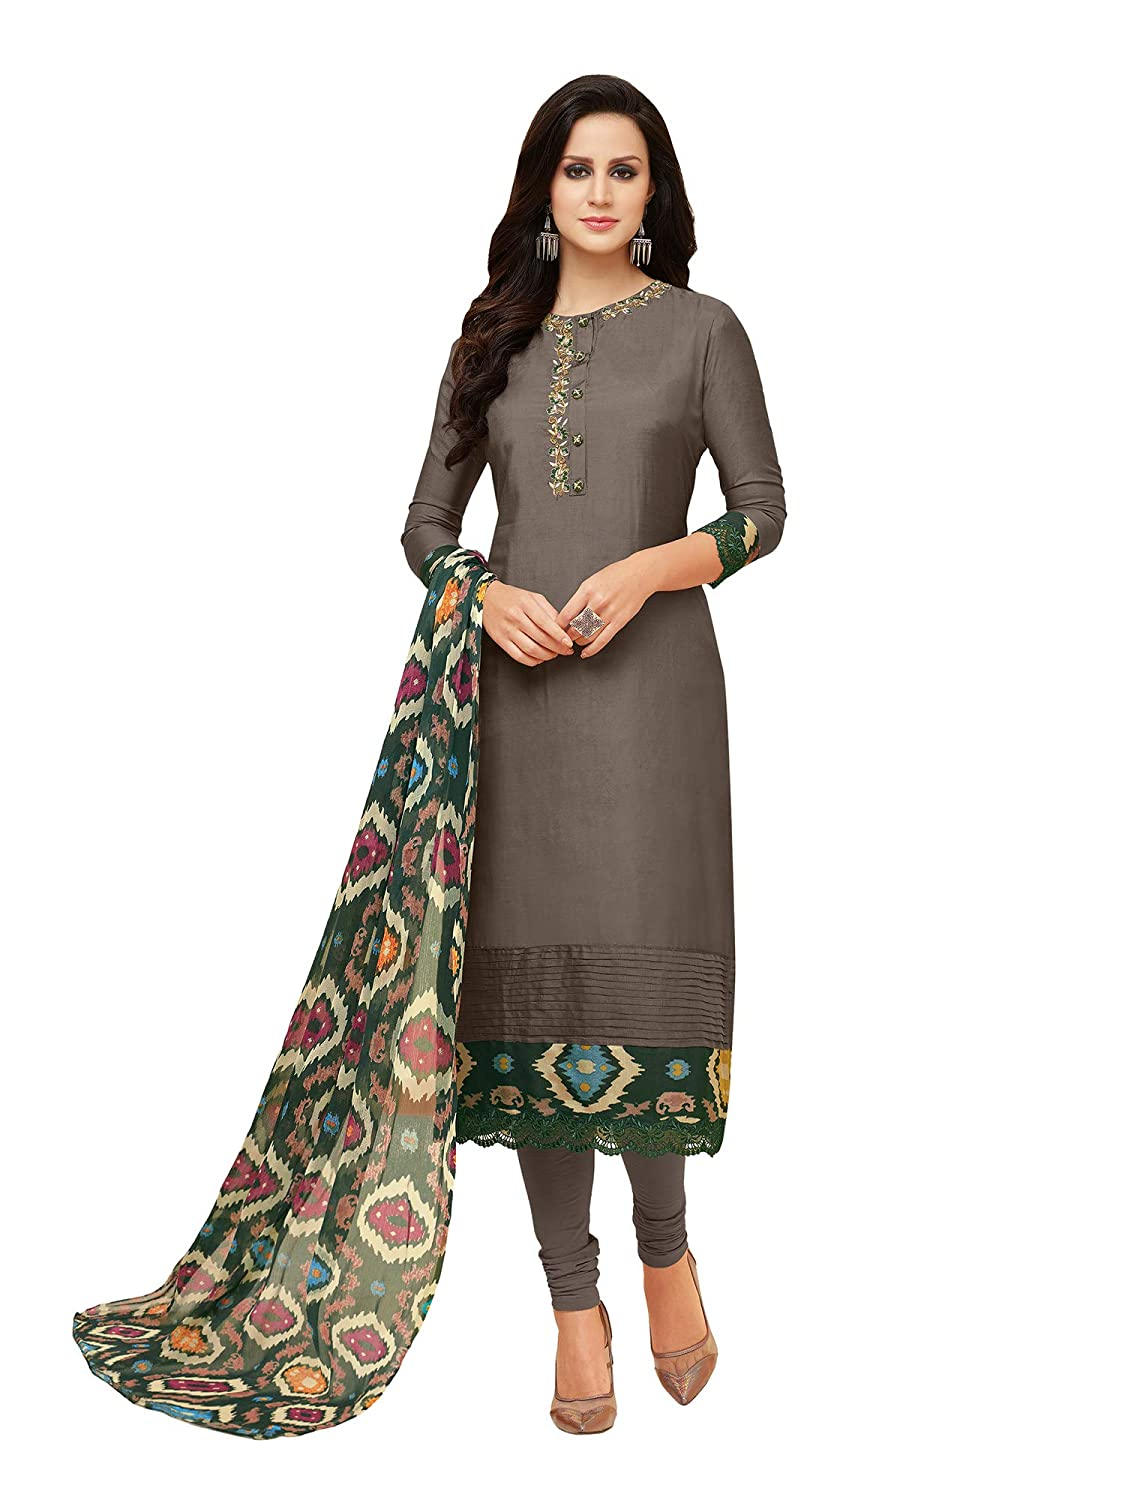 86ae1a9a3c AKHILAM Women's Embroidered Chanderi Cotton Chudidar Style Semi Stitched  Salwar Suit Dress Material with Chiffon Dupatta (Grey_25DMK1021): Amazon.in:  ...